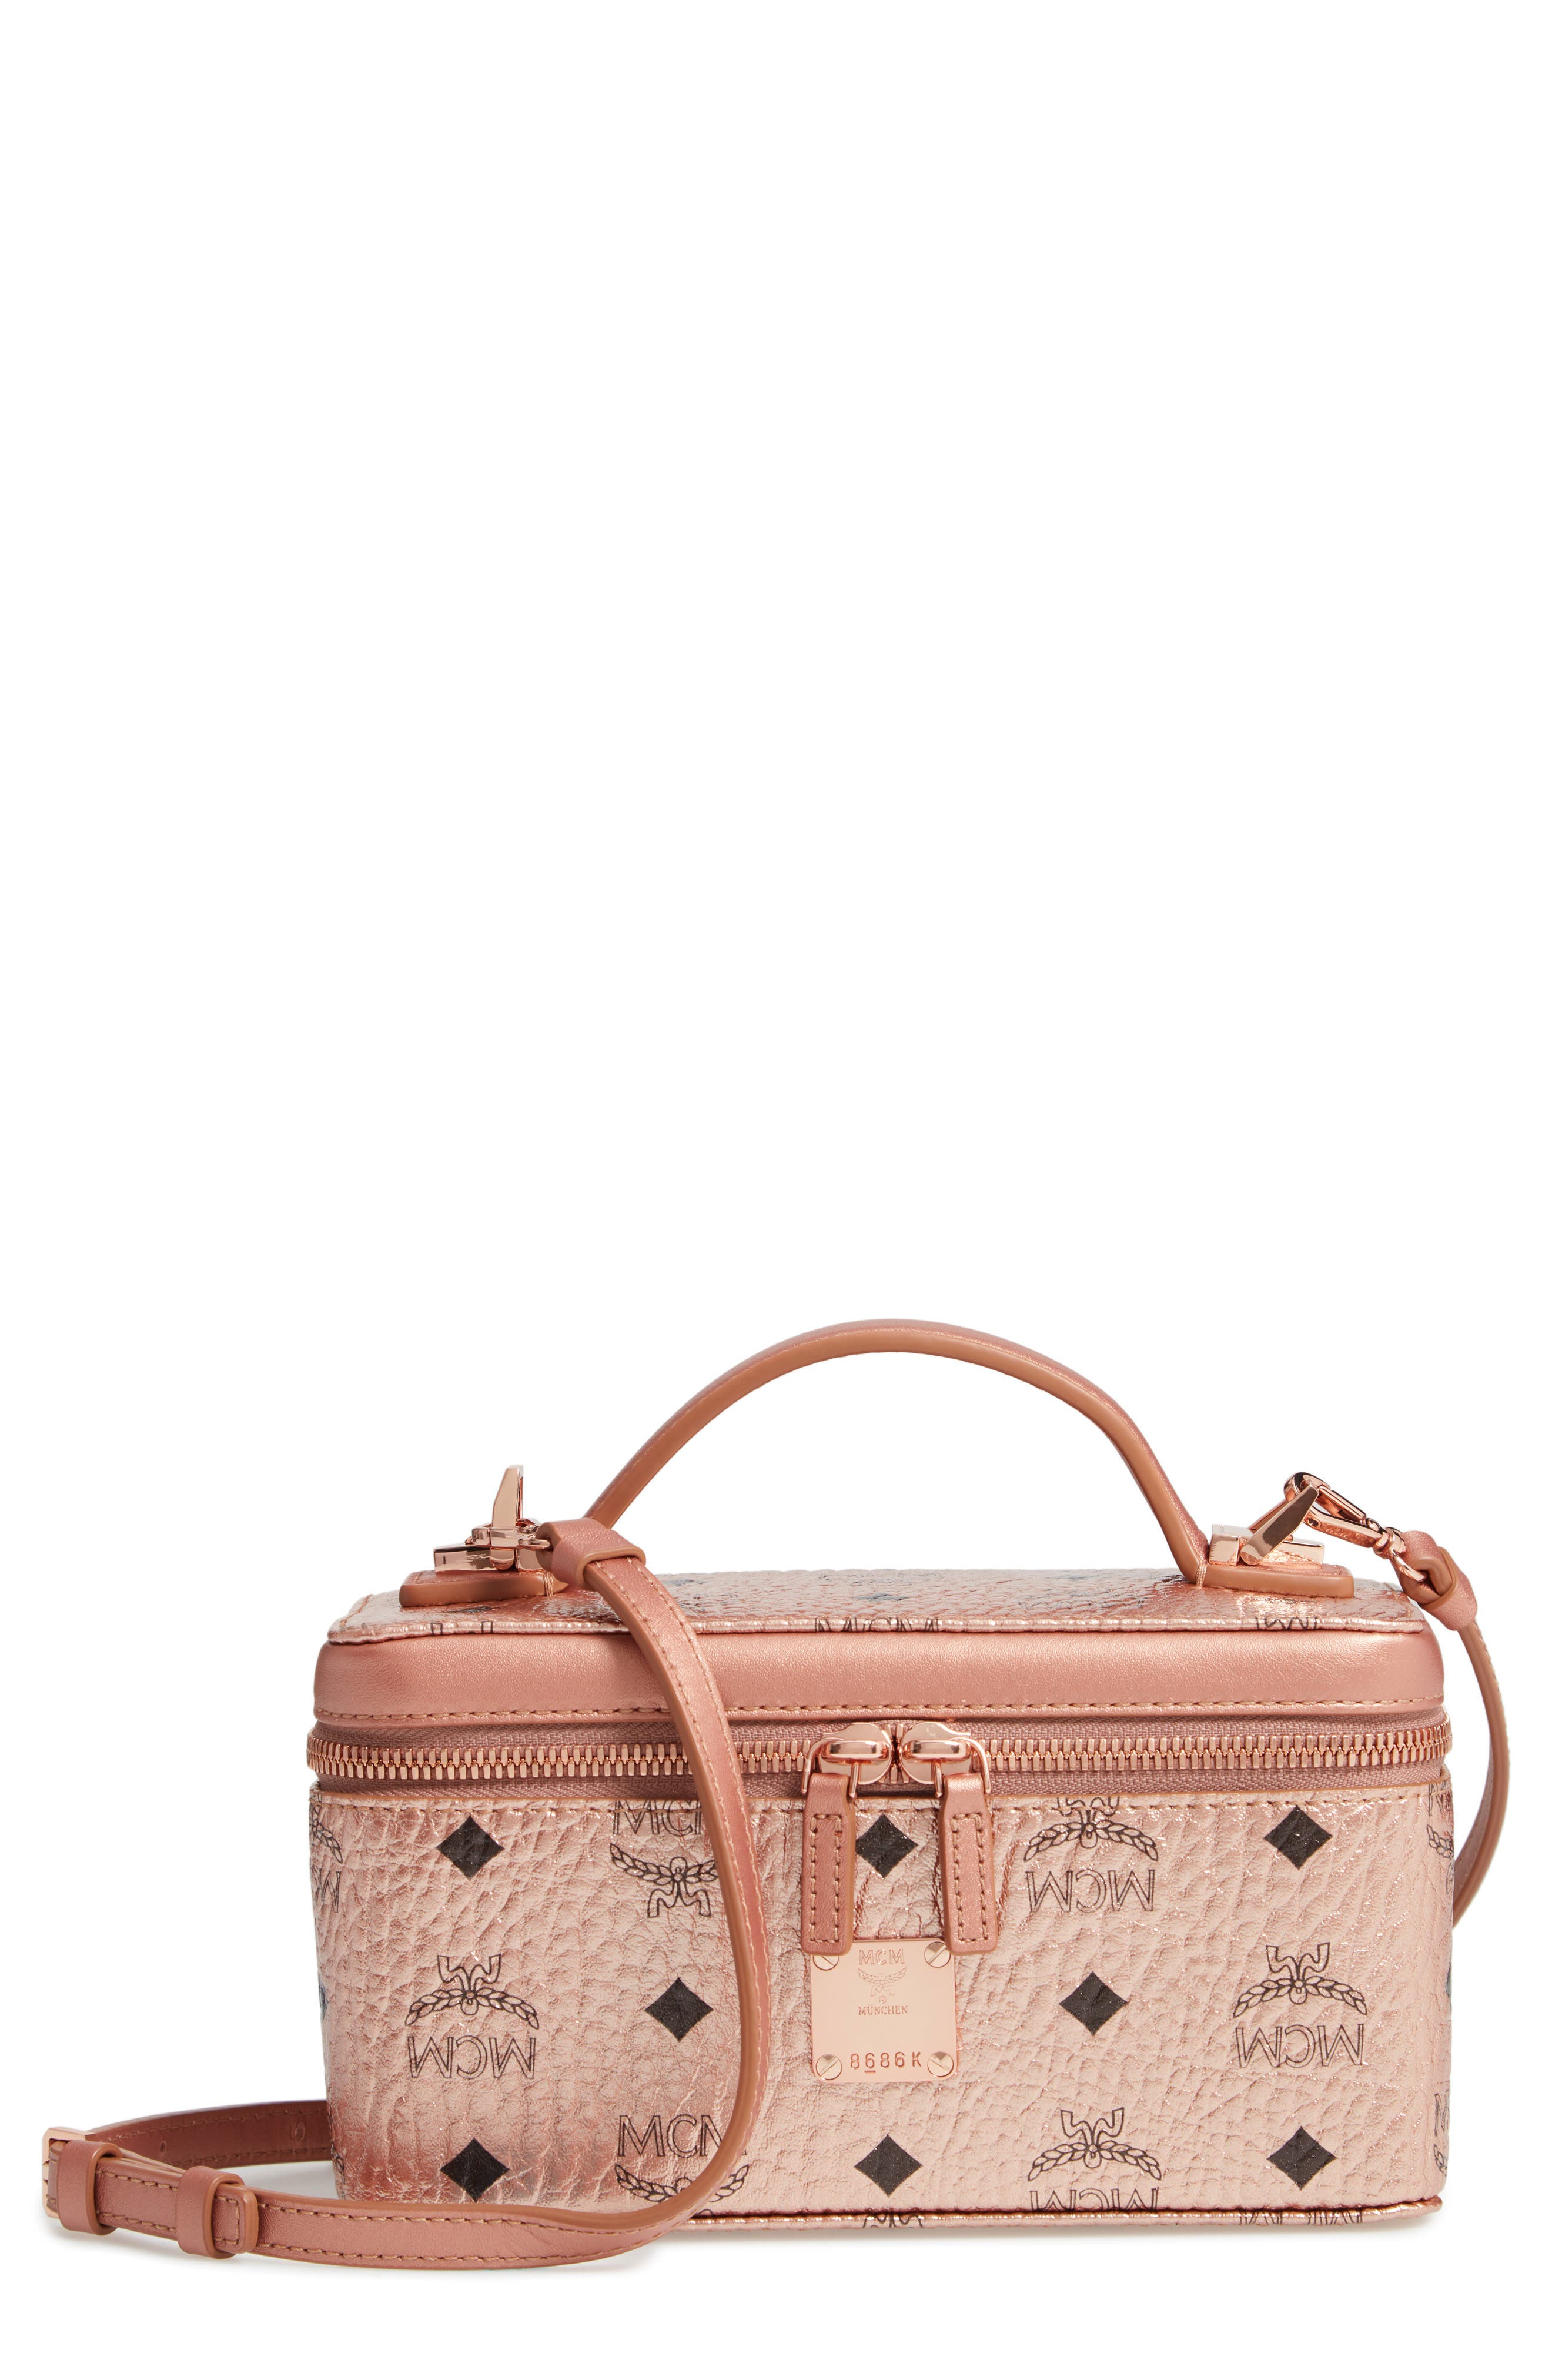 MCM, Visetos Coated Canvas Vanity Case, Main thumbnail 1, color, CHAMPAGNE GOLD